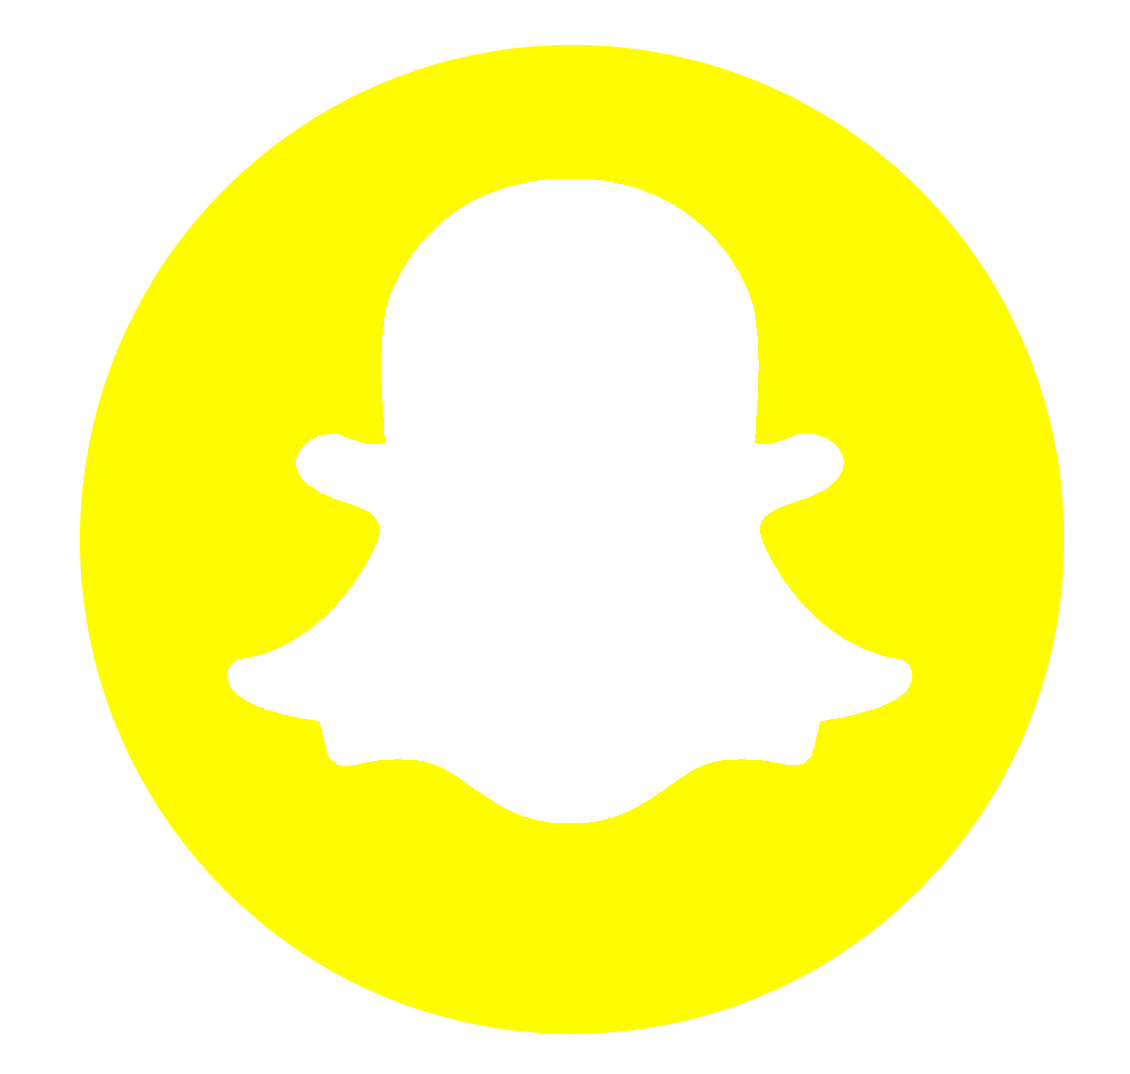 Download Snapchat Logo Icon Clipart image #46451